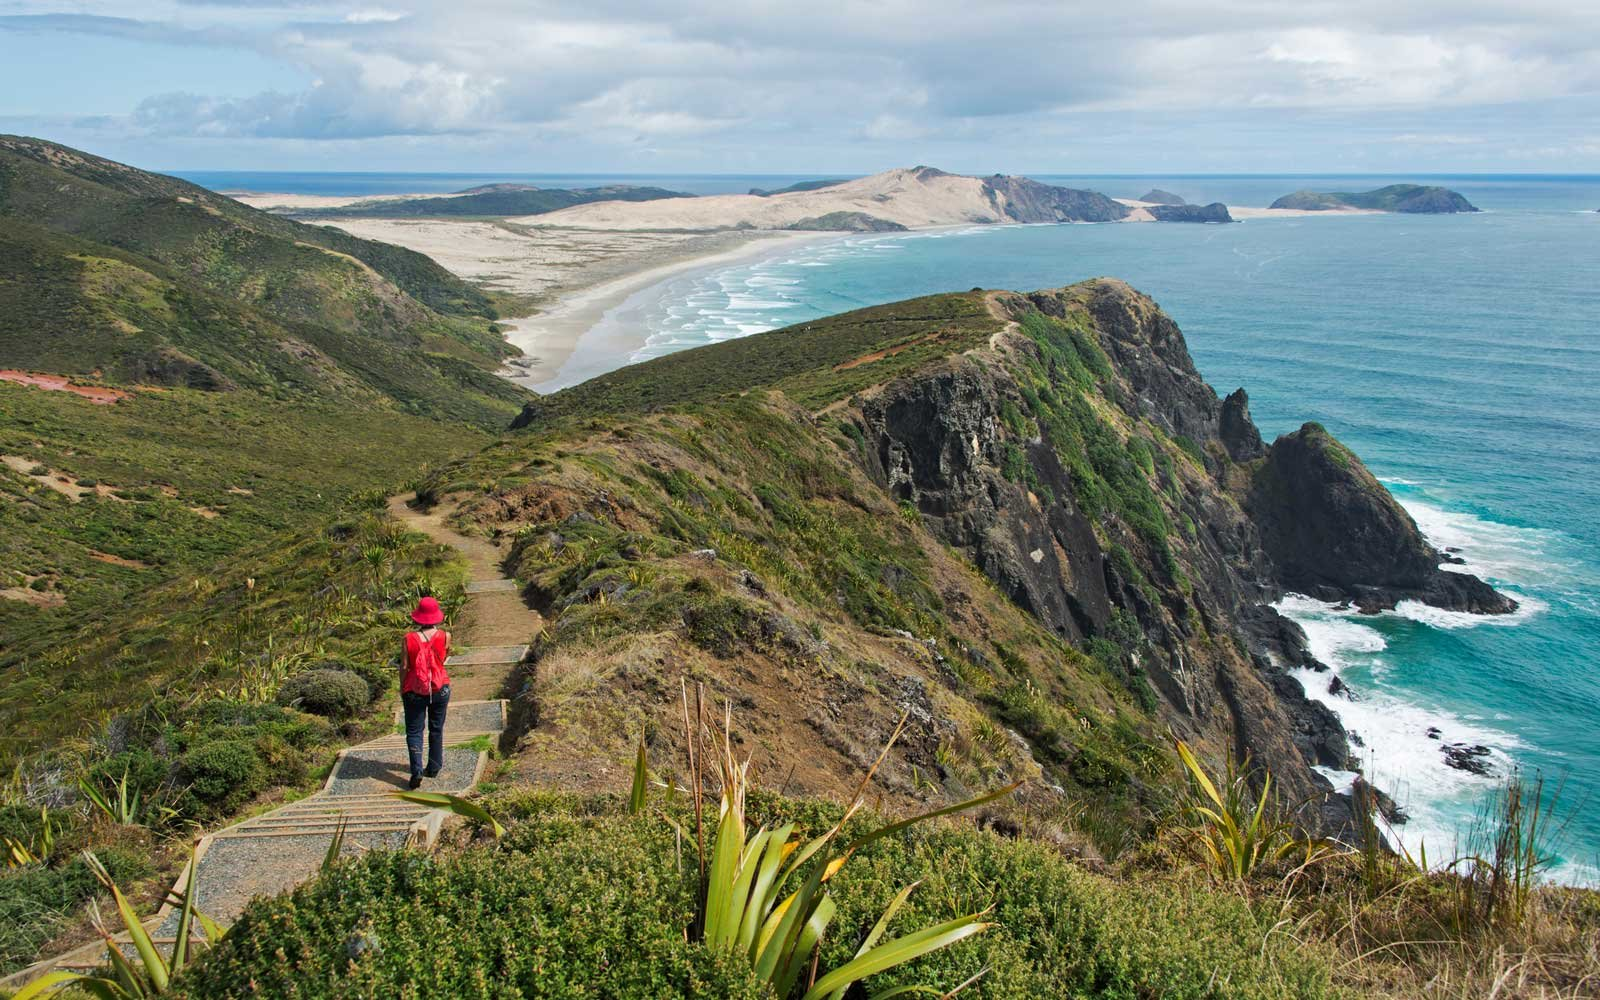 Cape Reinga, Aupouri Peninsula, Northland, New Zealand